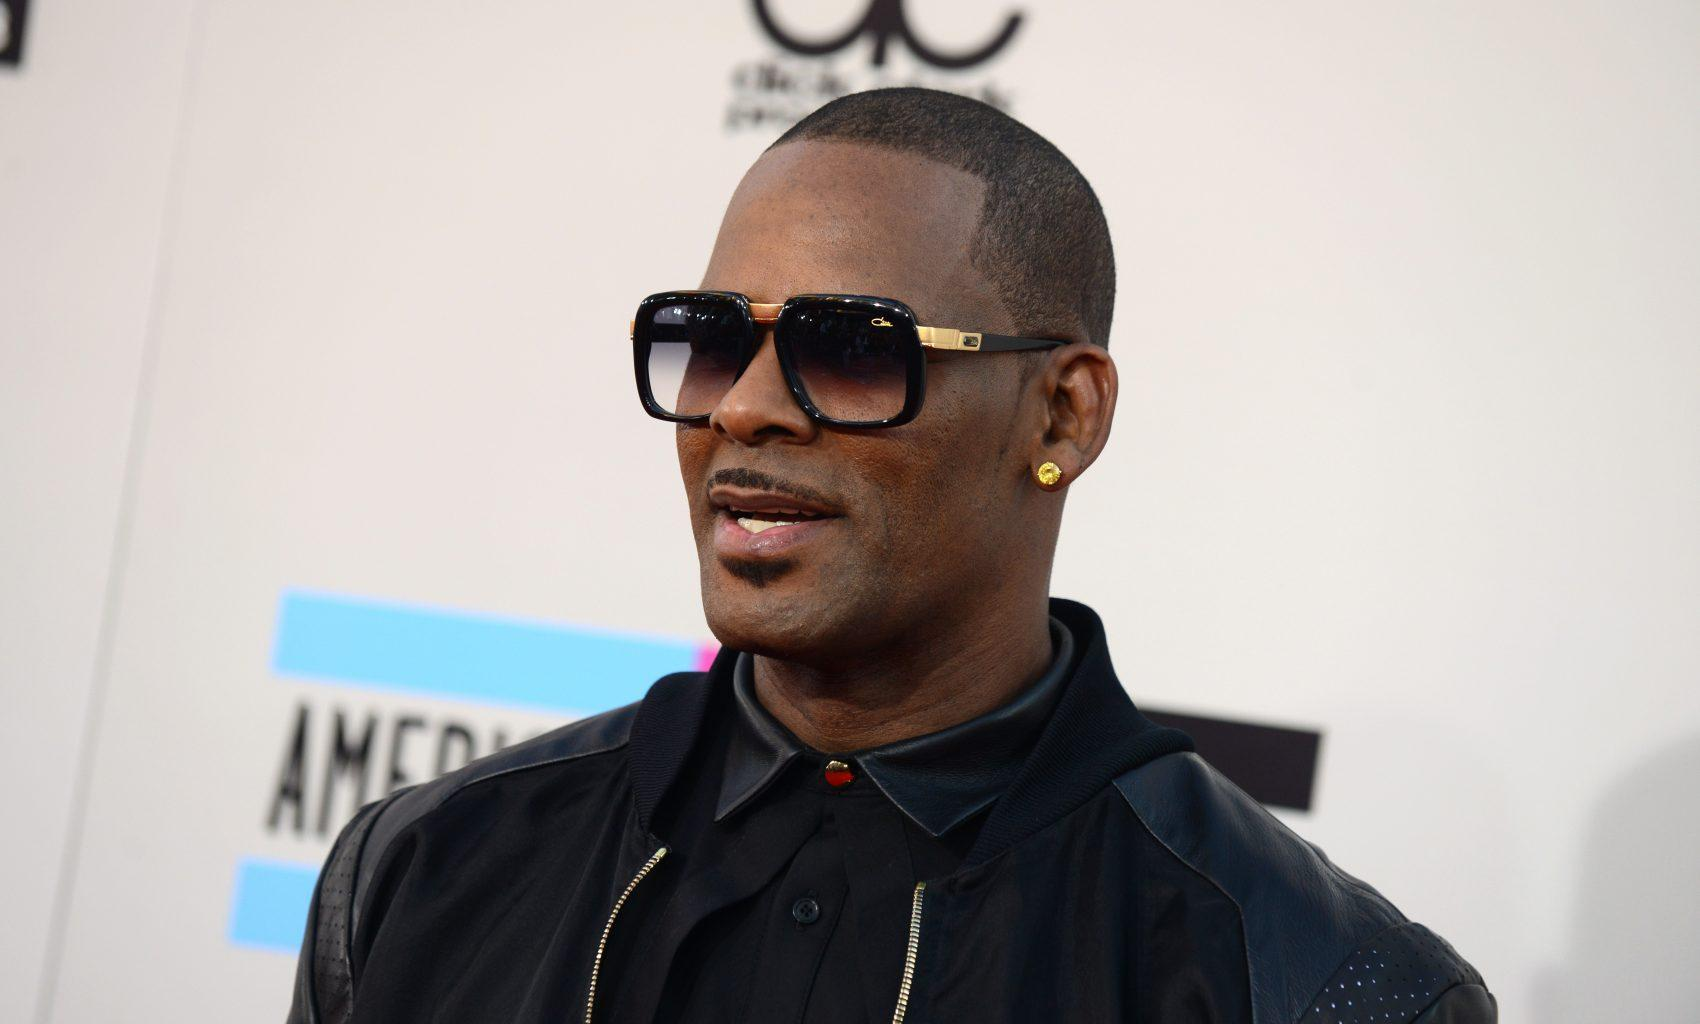 R. Kelly's Attorney Claims Joycelyn Savage Is Lying To Get Money -- Fans Also Have Their Own Theory That The Singer Is In On It!